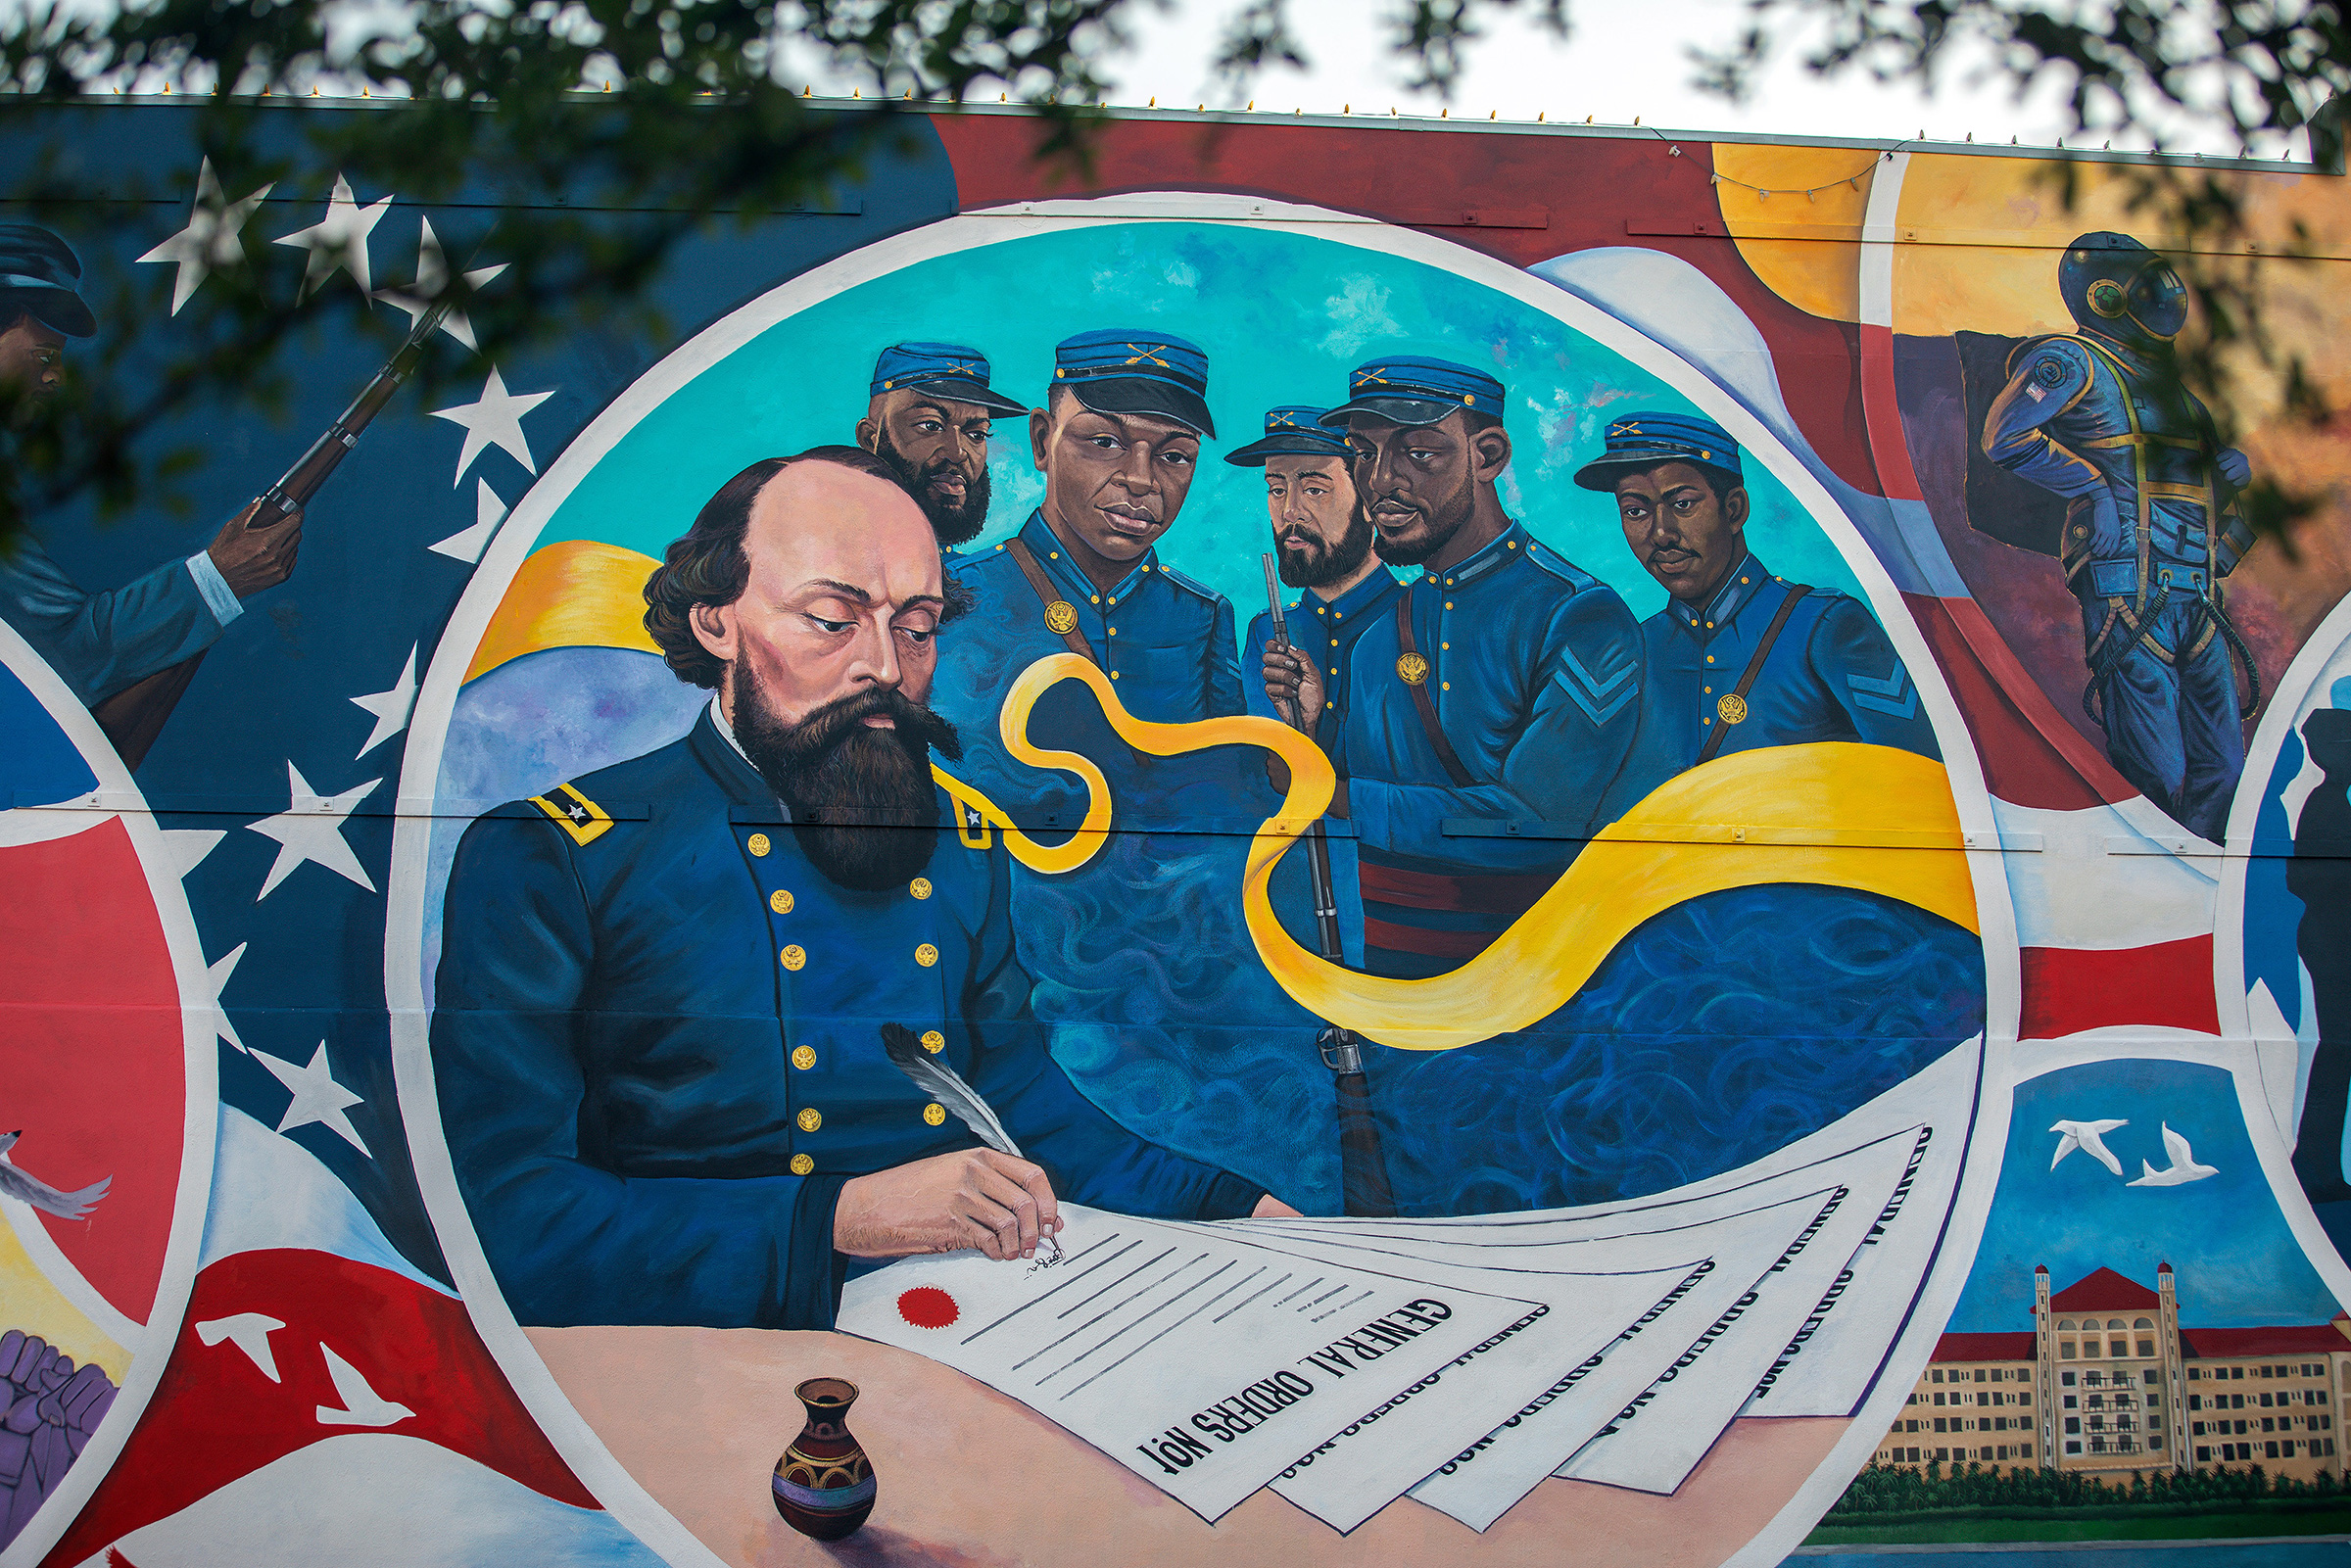 A mural in Galveston, Texas, marks the spot where General Order No. 3 was issued